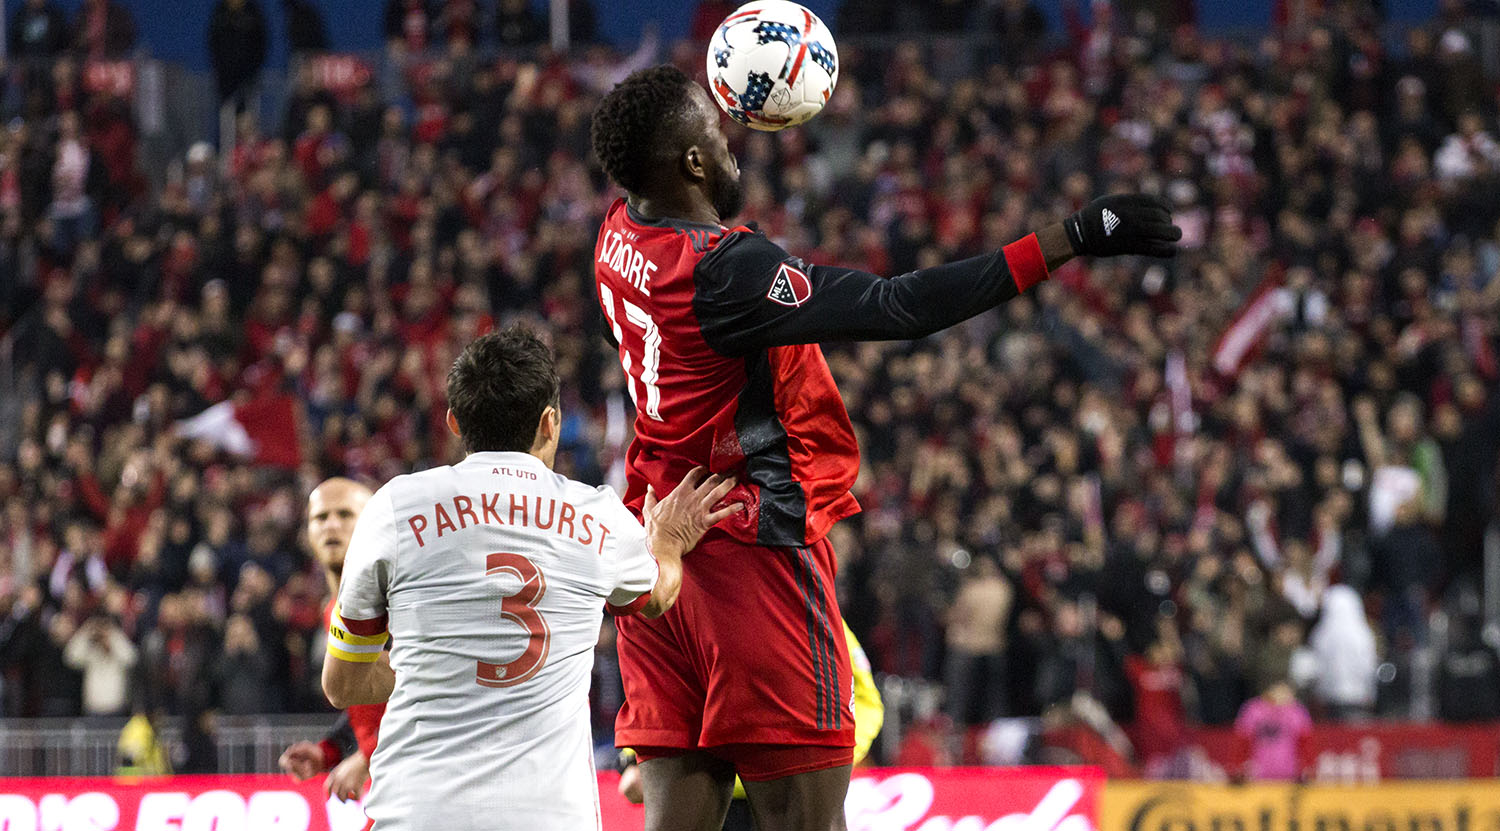 Jozy Altidore and Parkhurst go into the air for a header on the ball during a game at BMO Field. Image by Dennis Marciniak of denMAR Media.